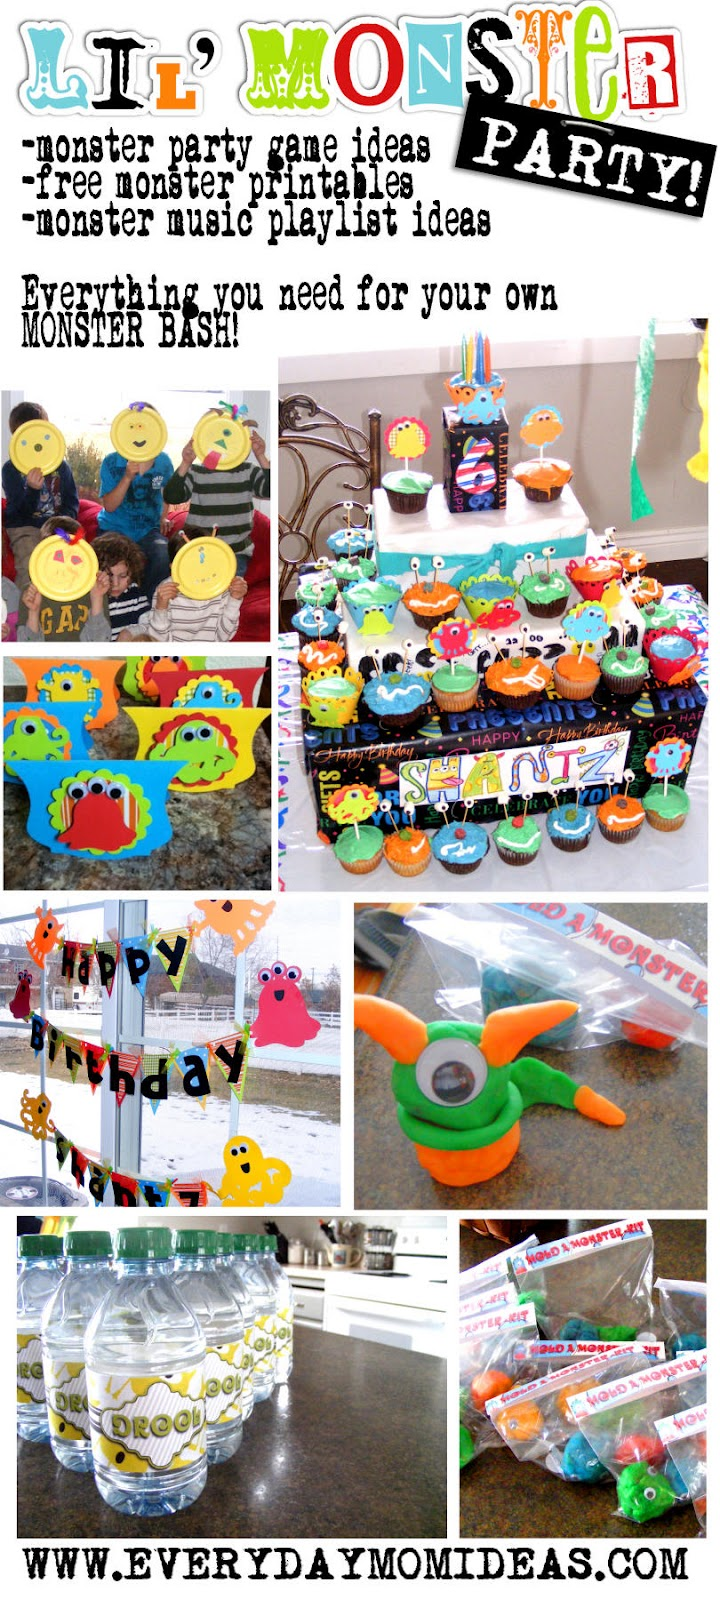 Little Monster Bash Birthday Party Ideas Everyday Mom Ideas